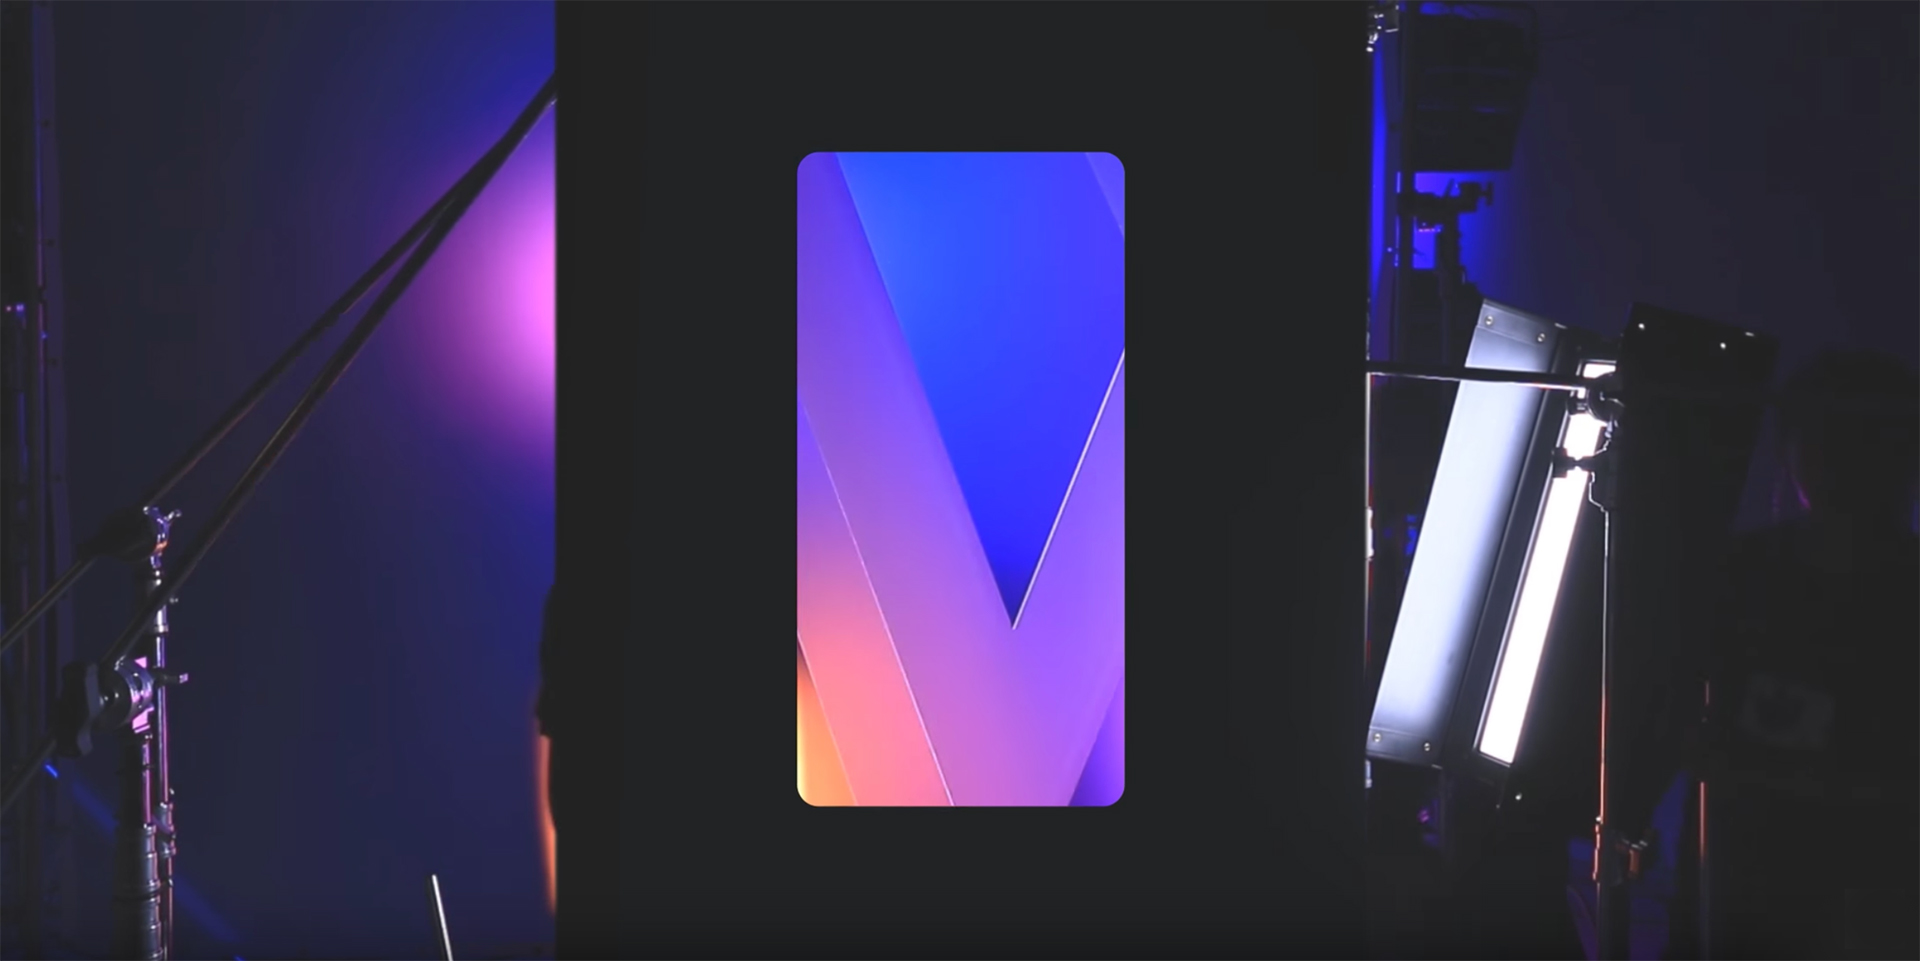 Behind the Scenes of the Wallpaper Design for the LG V30